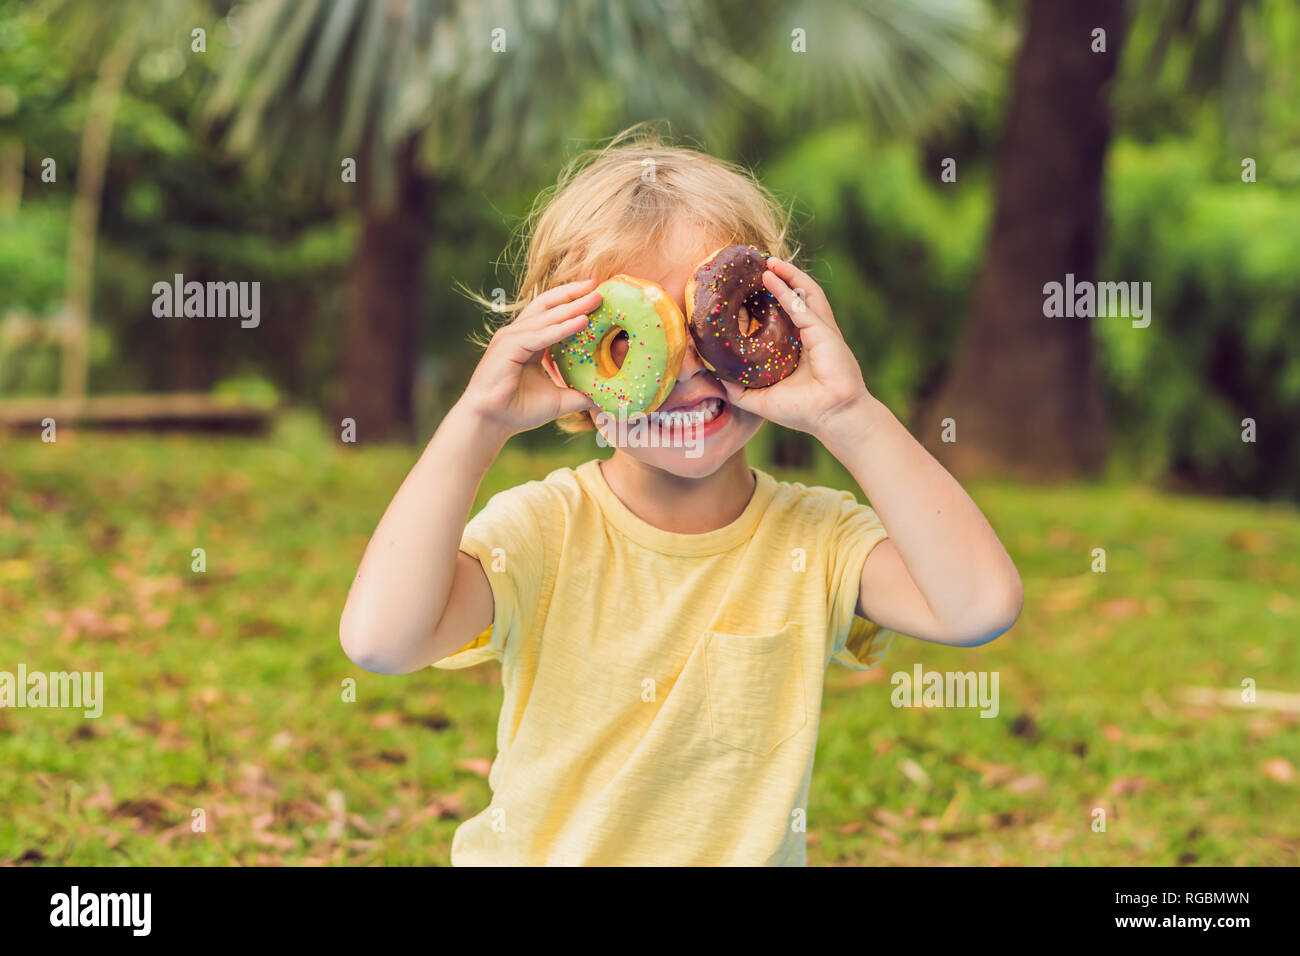 Funny boy with donut. child is having fun with doughnut. Tasty food for kids. Happy time outdoor with sweet food - Stock Image